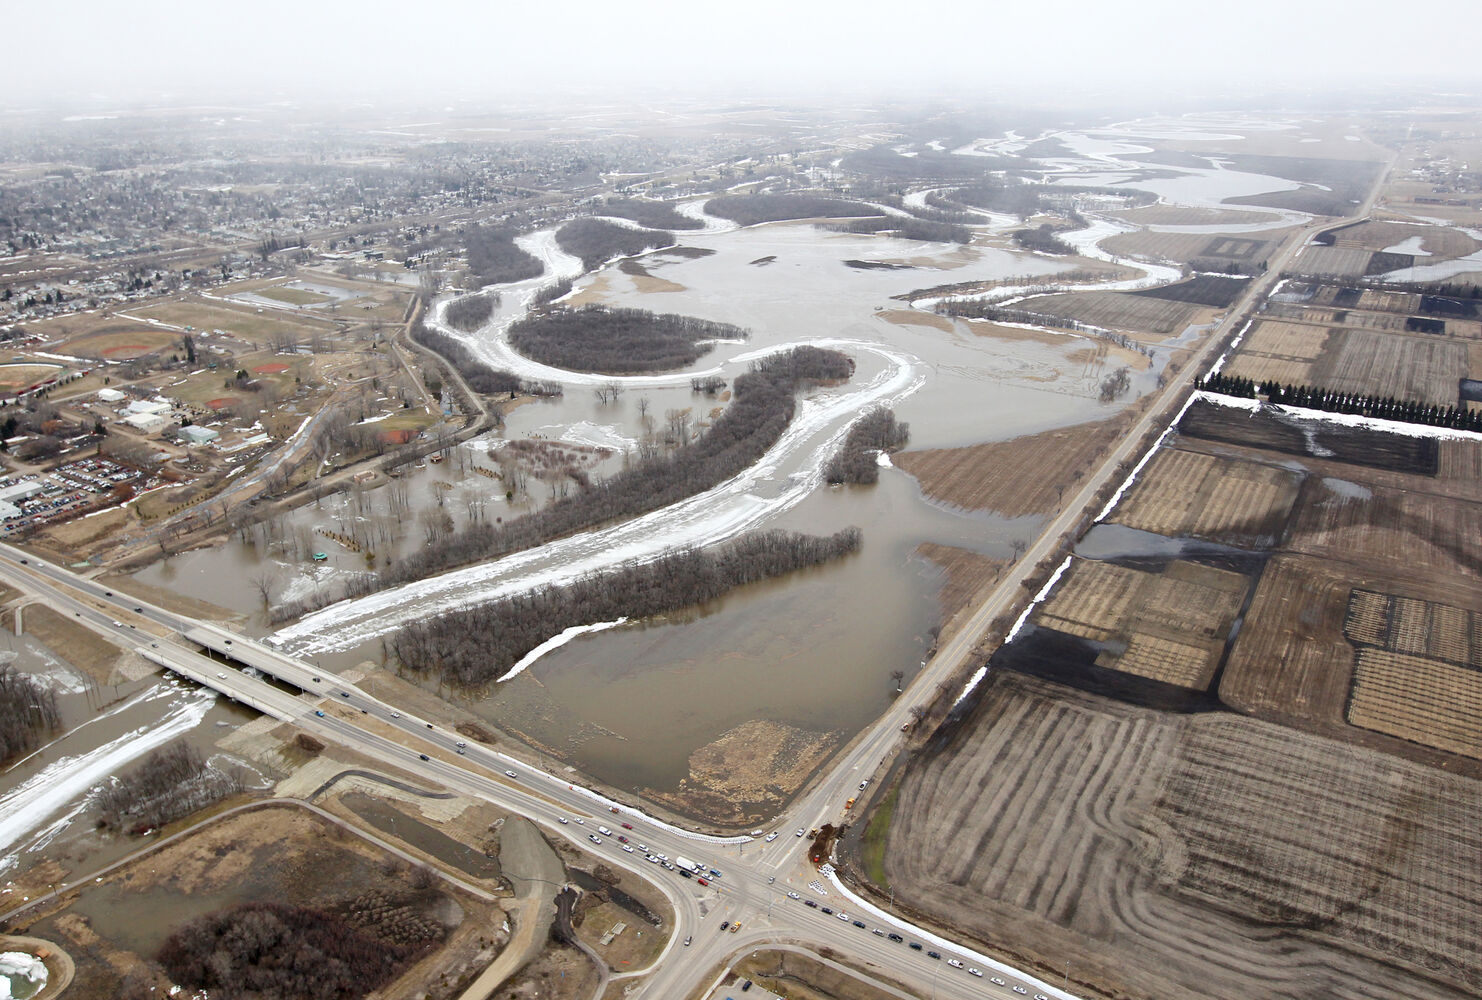 The ice covered Assiniboine River that has flooded its banks into surrounding fields and parks is seen west of the intersection of 18th St. and Grand Valley Rd. (bottom section) on Friday. The flooding has extended to Grand Valley Rd. at 18th St. but would still have to rise quite a bit to flood the road. (Tim Smith/Brandon Sun)